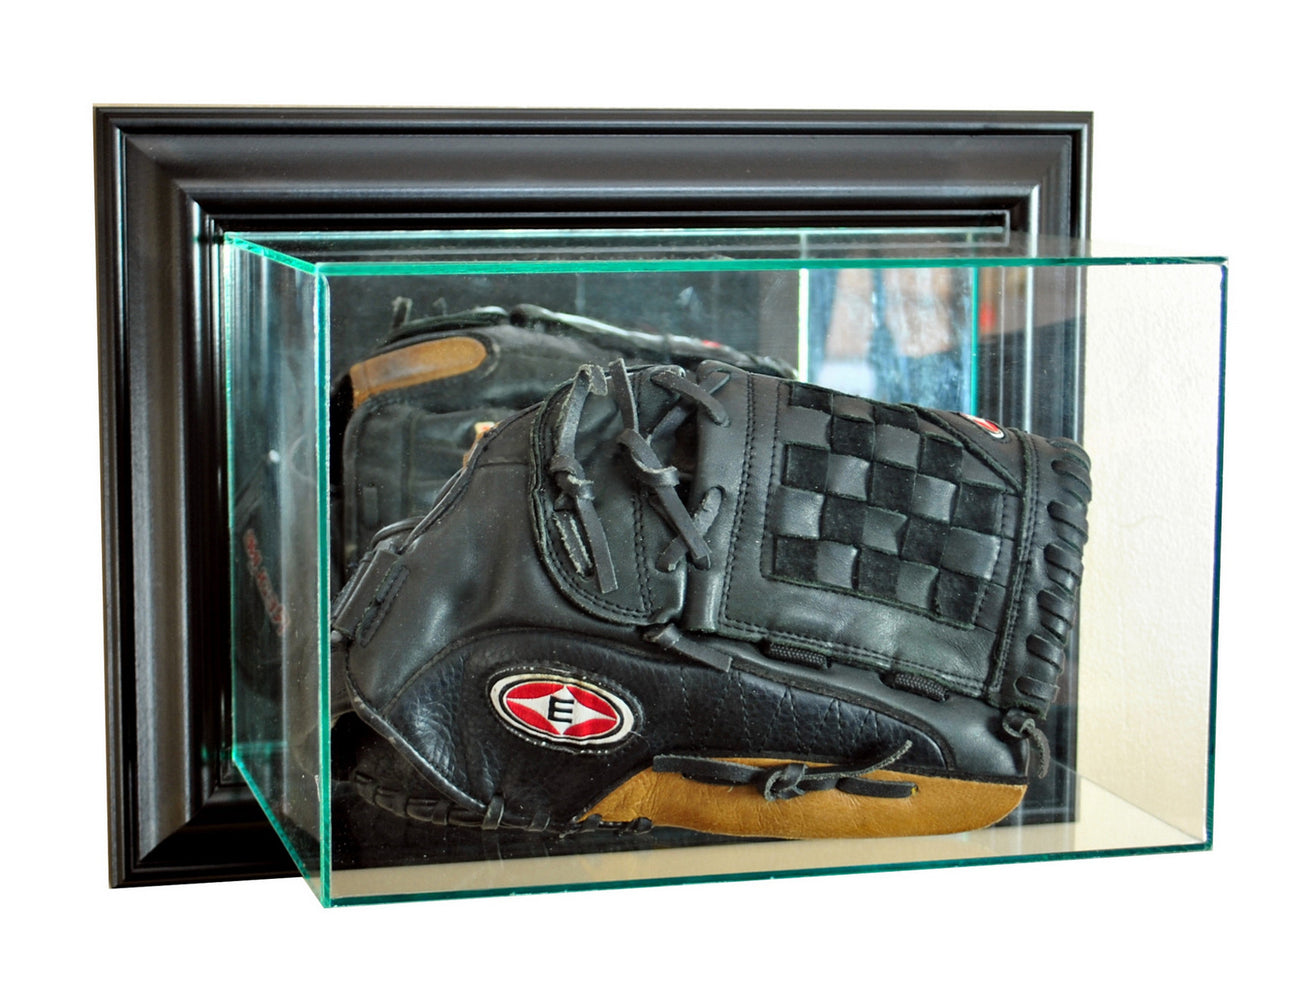 Wall Mounted Baseball Glove Display Case with Mirrors